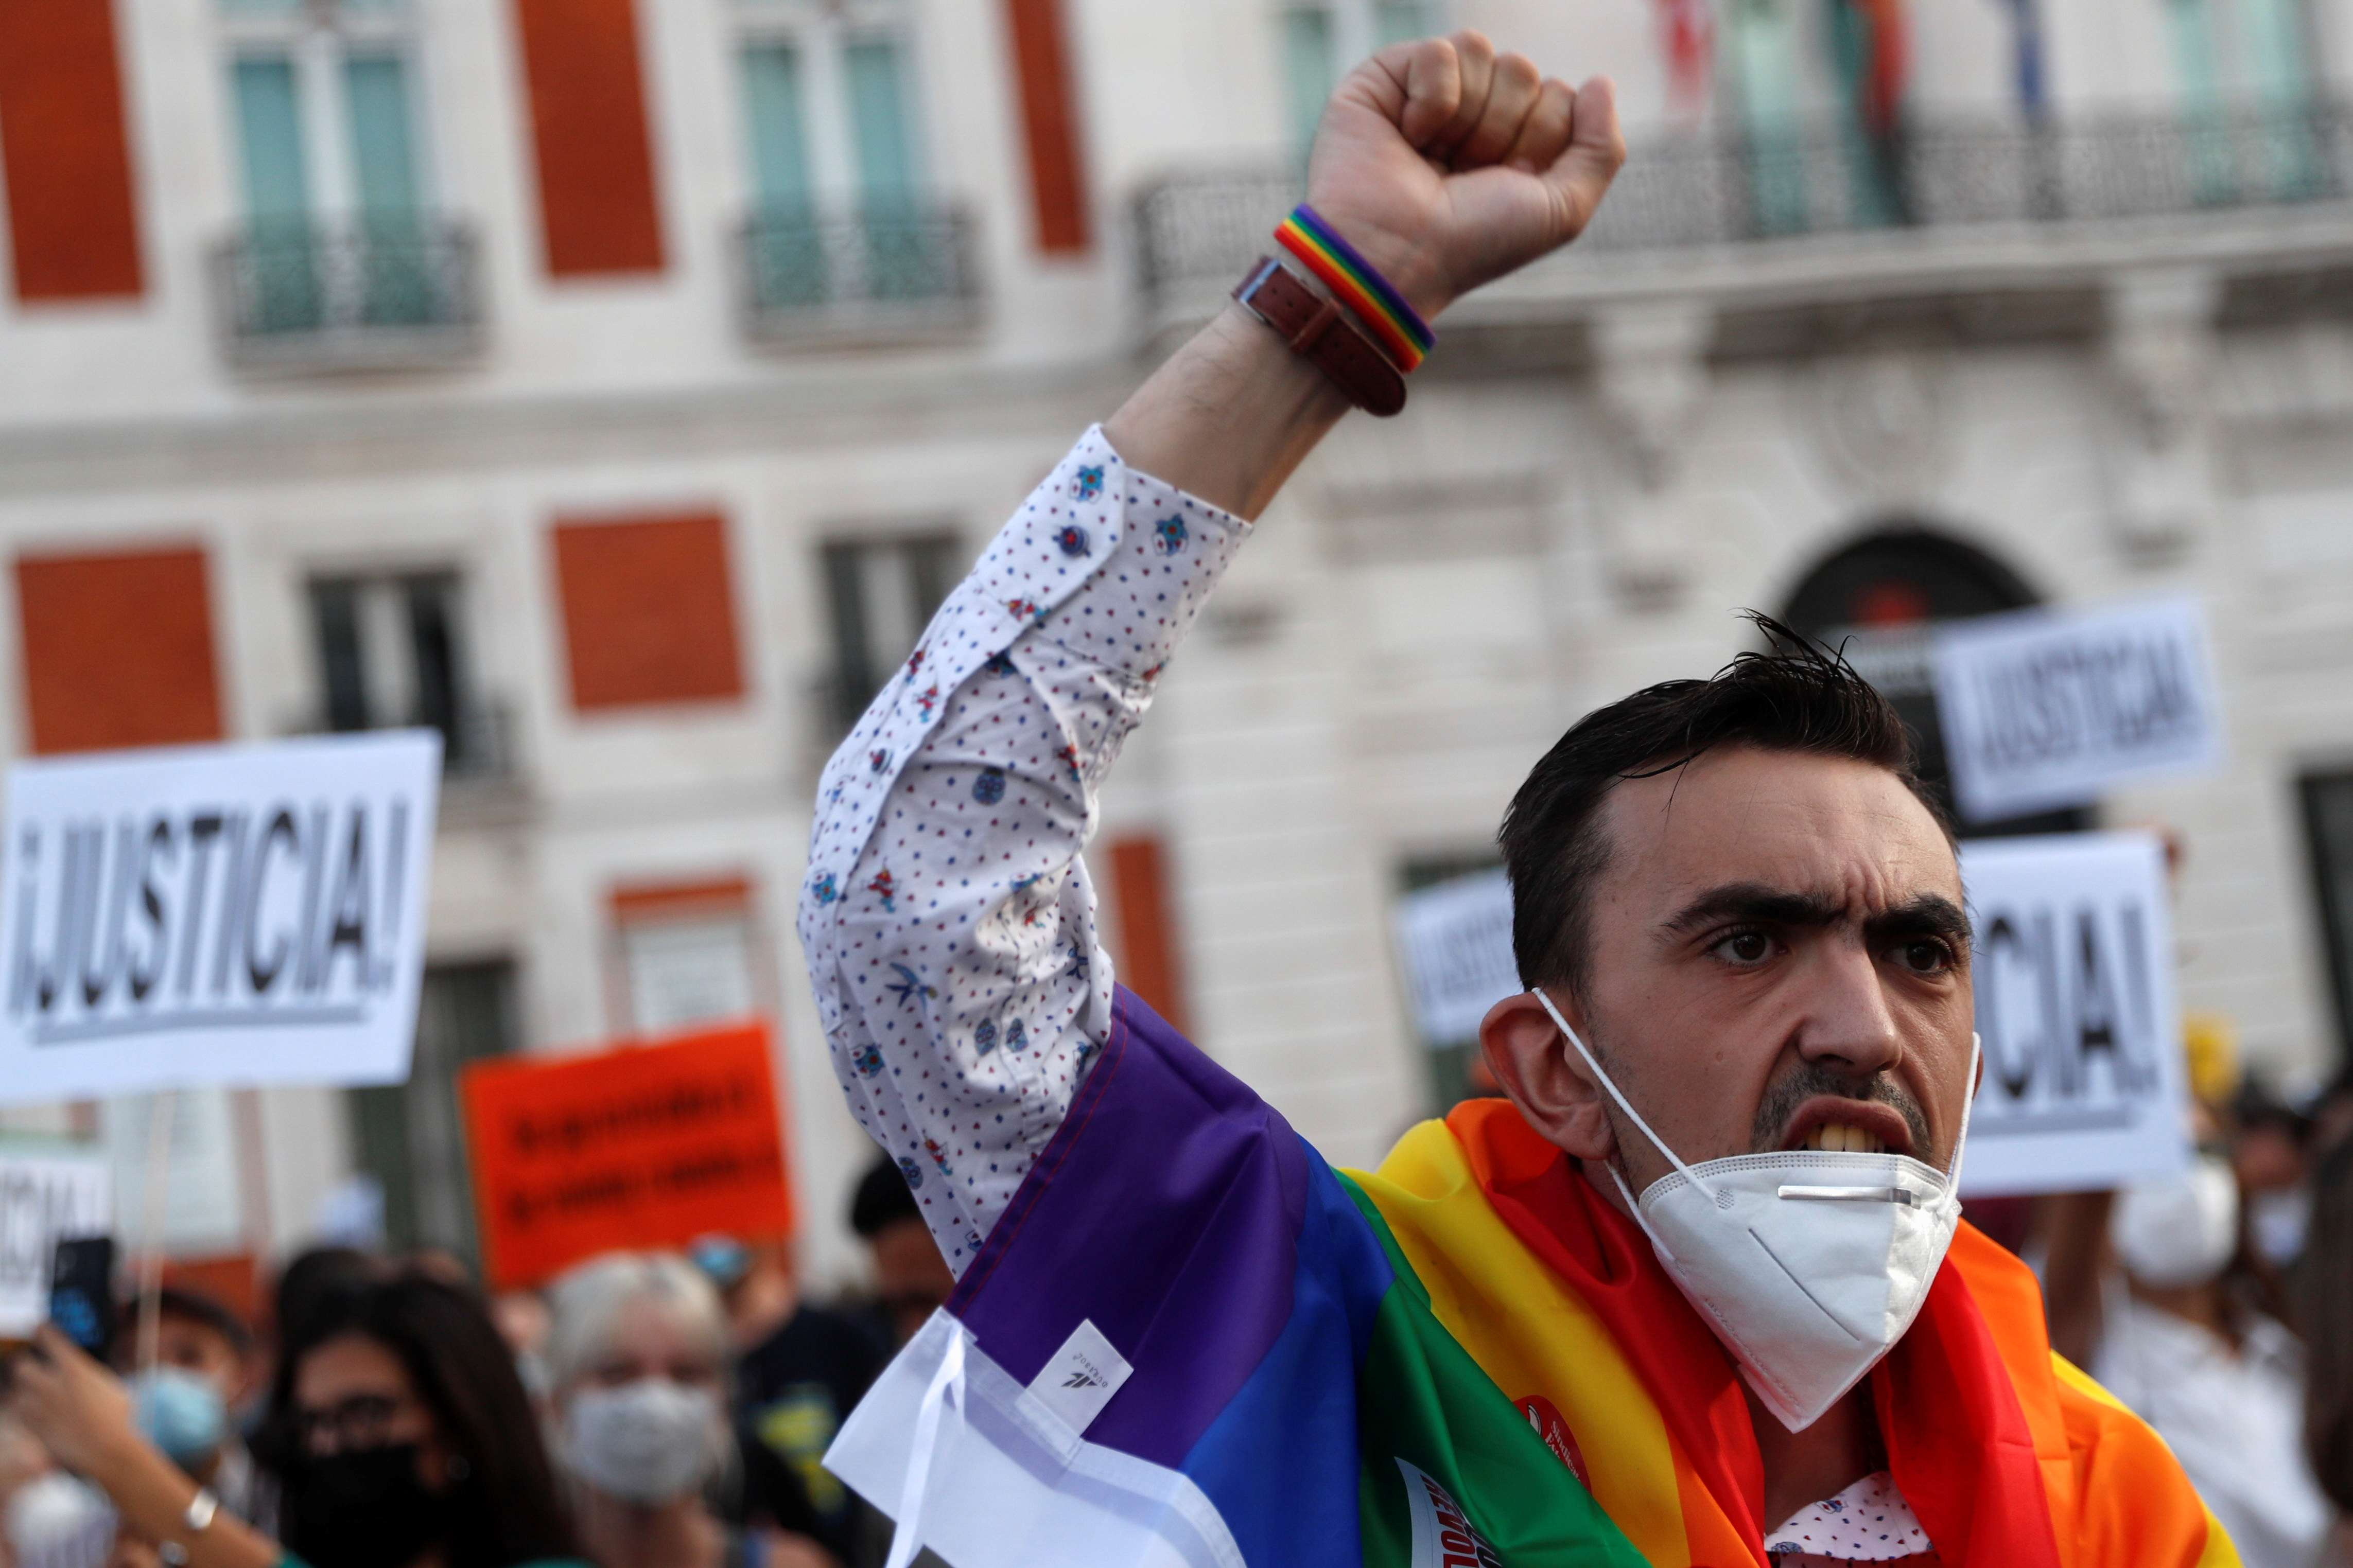 LGBTIQ+ activists and supporters demonstrate against hate crimes at Puerta del Sol square in Madrid, Spain, September 11, 2021. REUTERS/Susana Vera